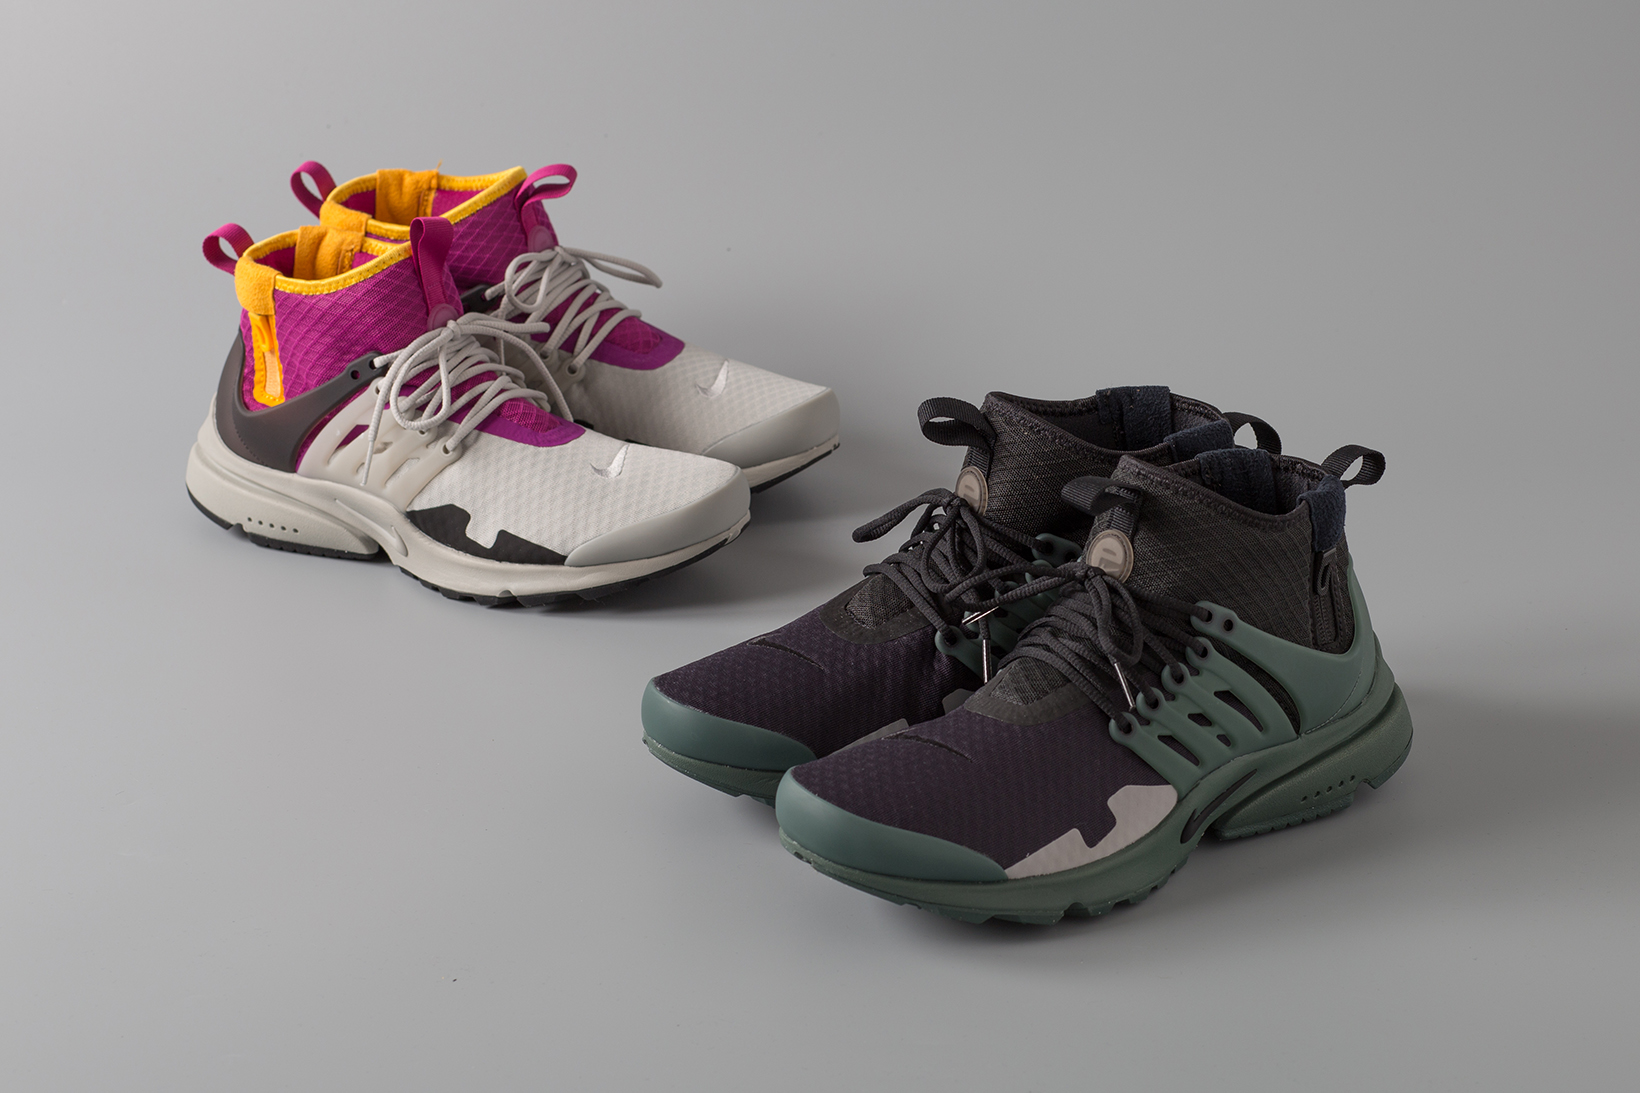 Nike Air Presto Mid SP ACRONYM Purple Grey Black Green - 3758440